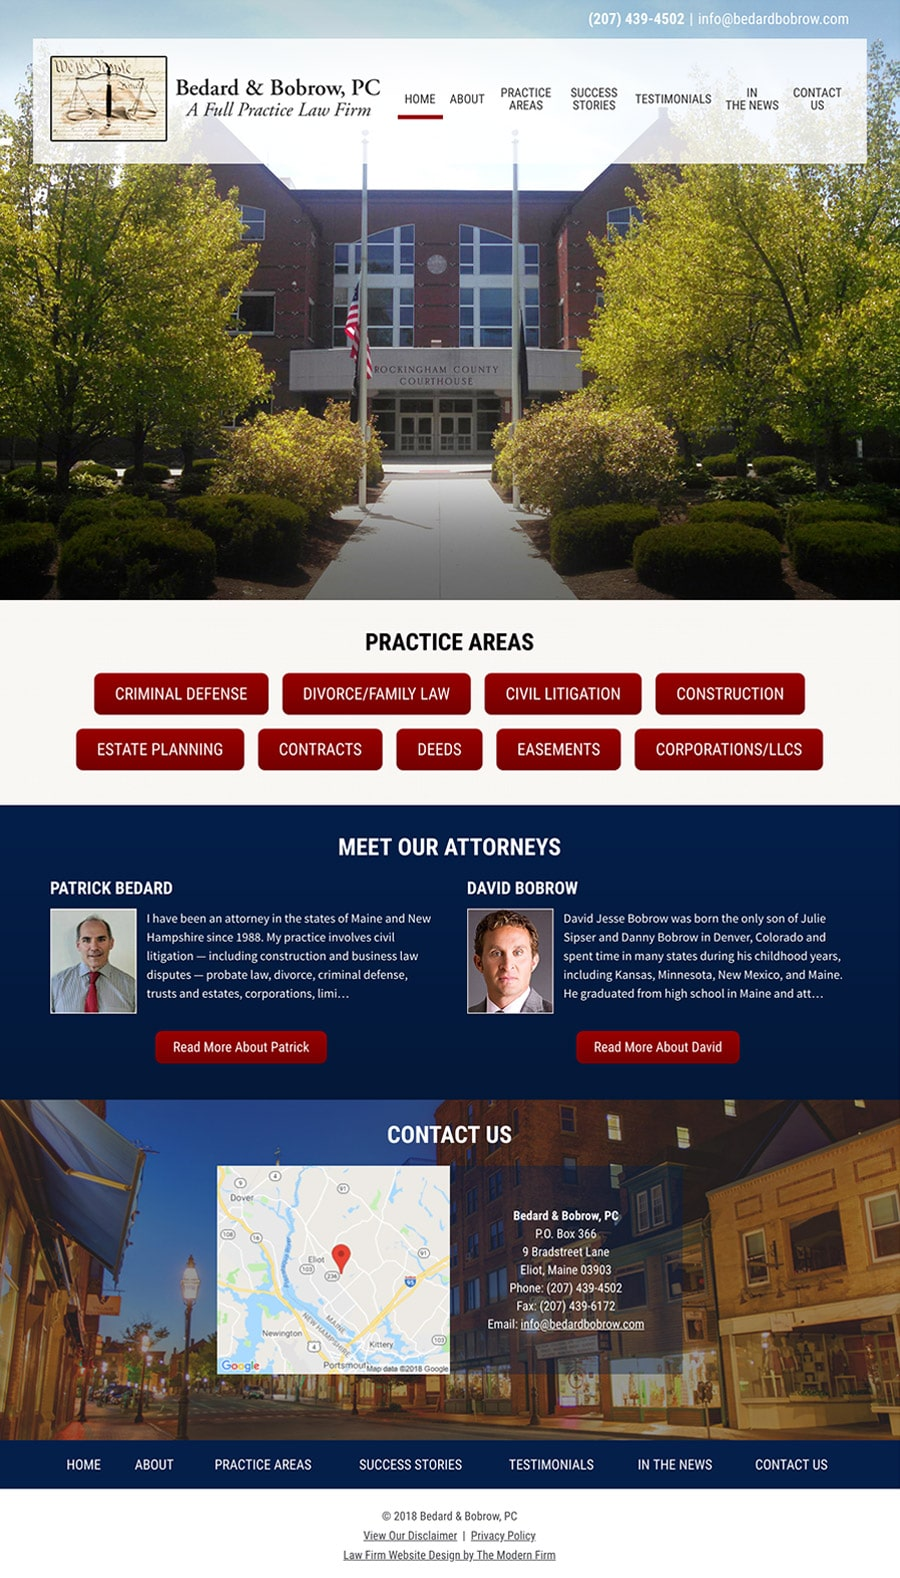 Law Firm Website Design for Bedard & Bobrow, PC